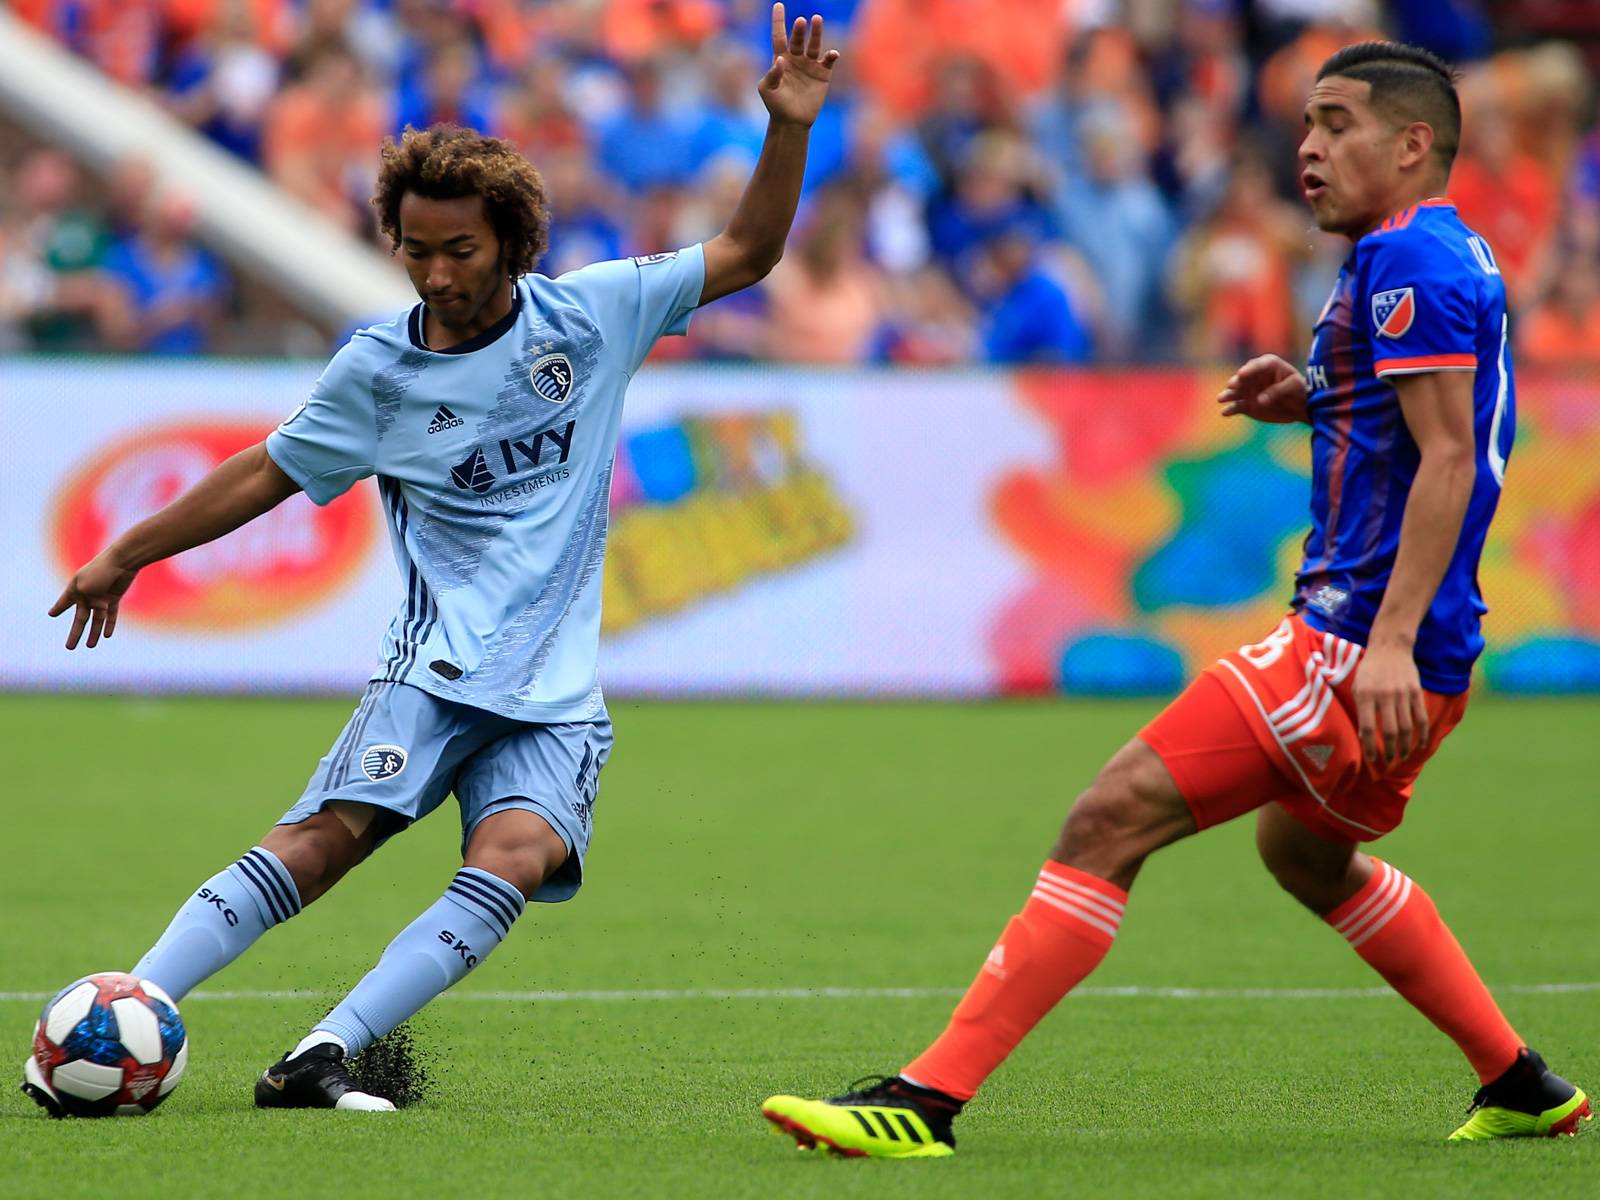 Gianluca Busio has performed well with Sporting KC